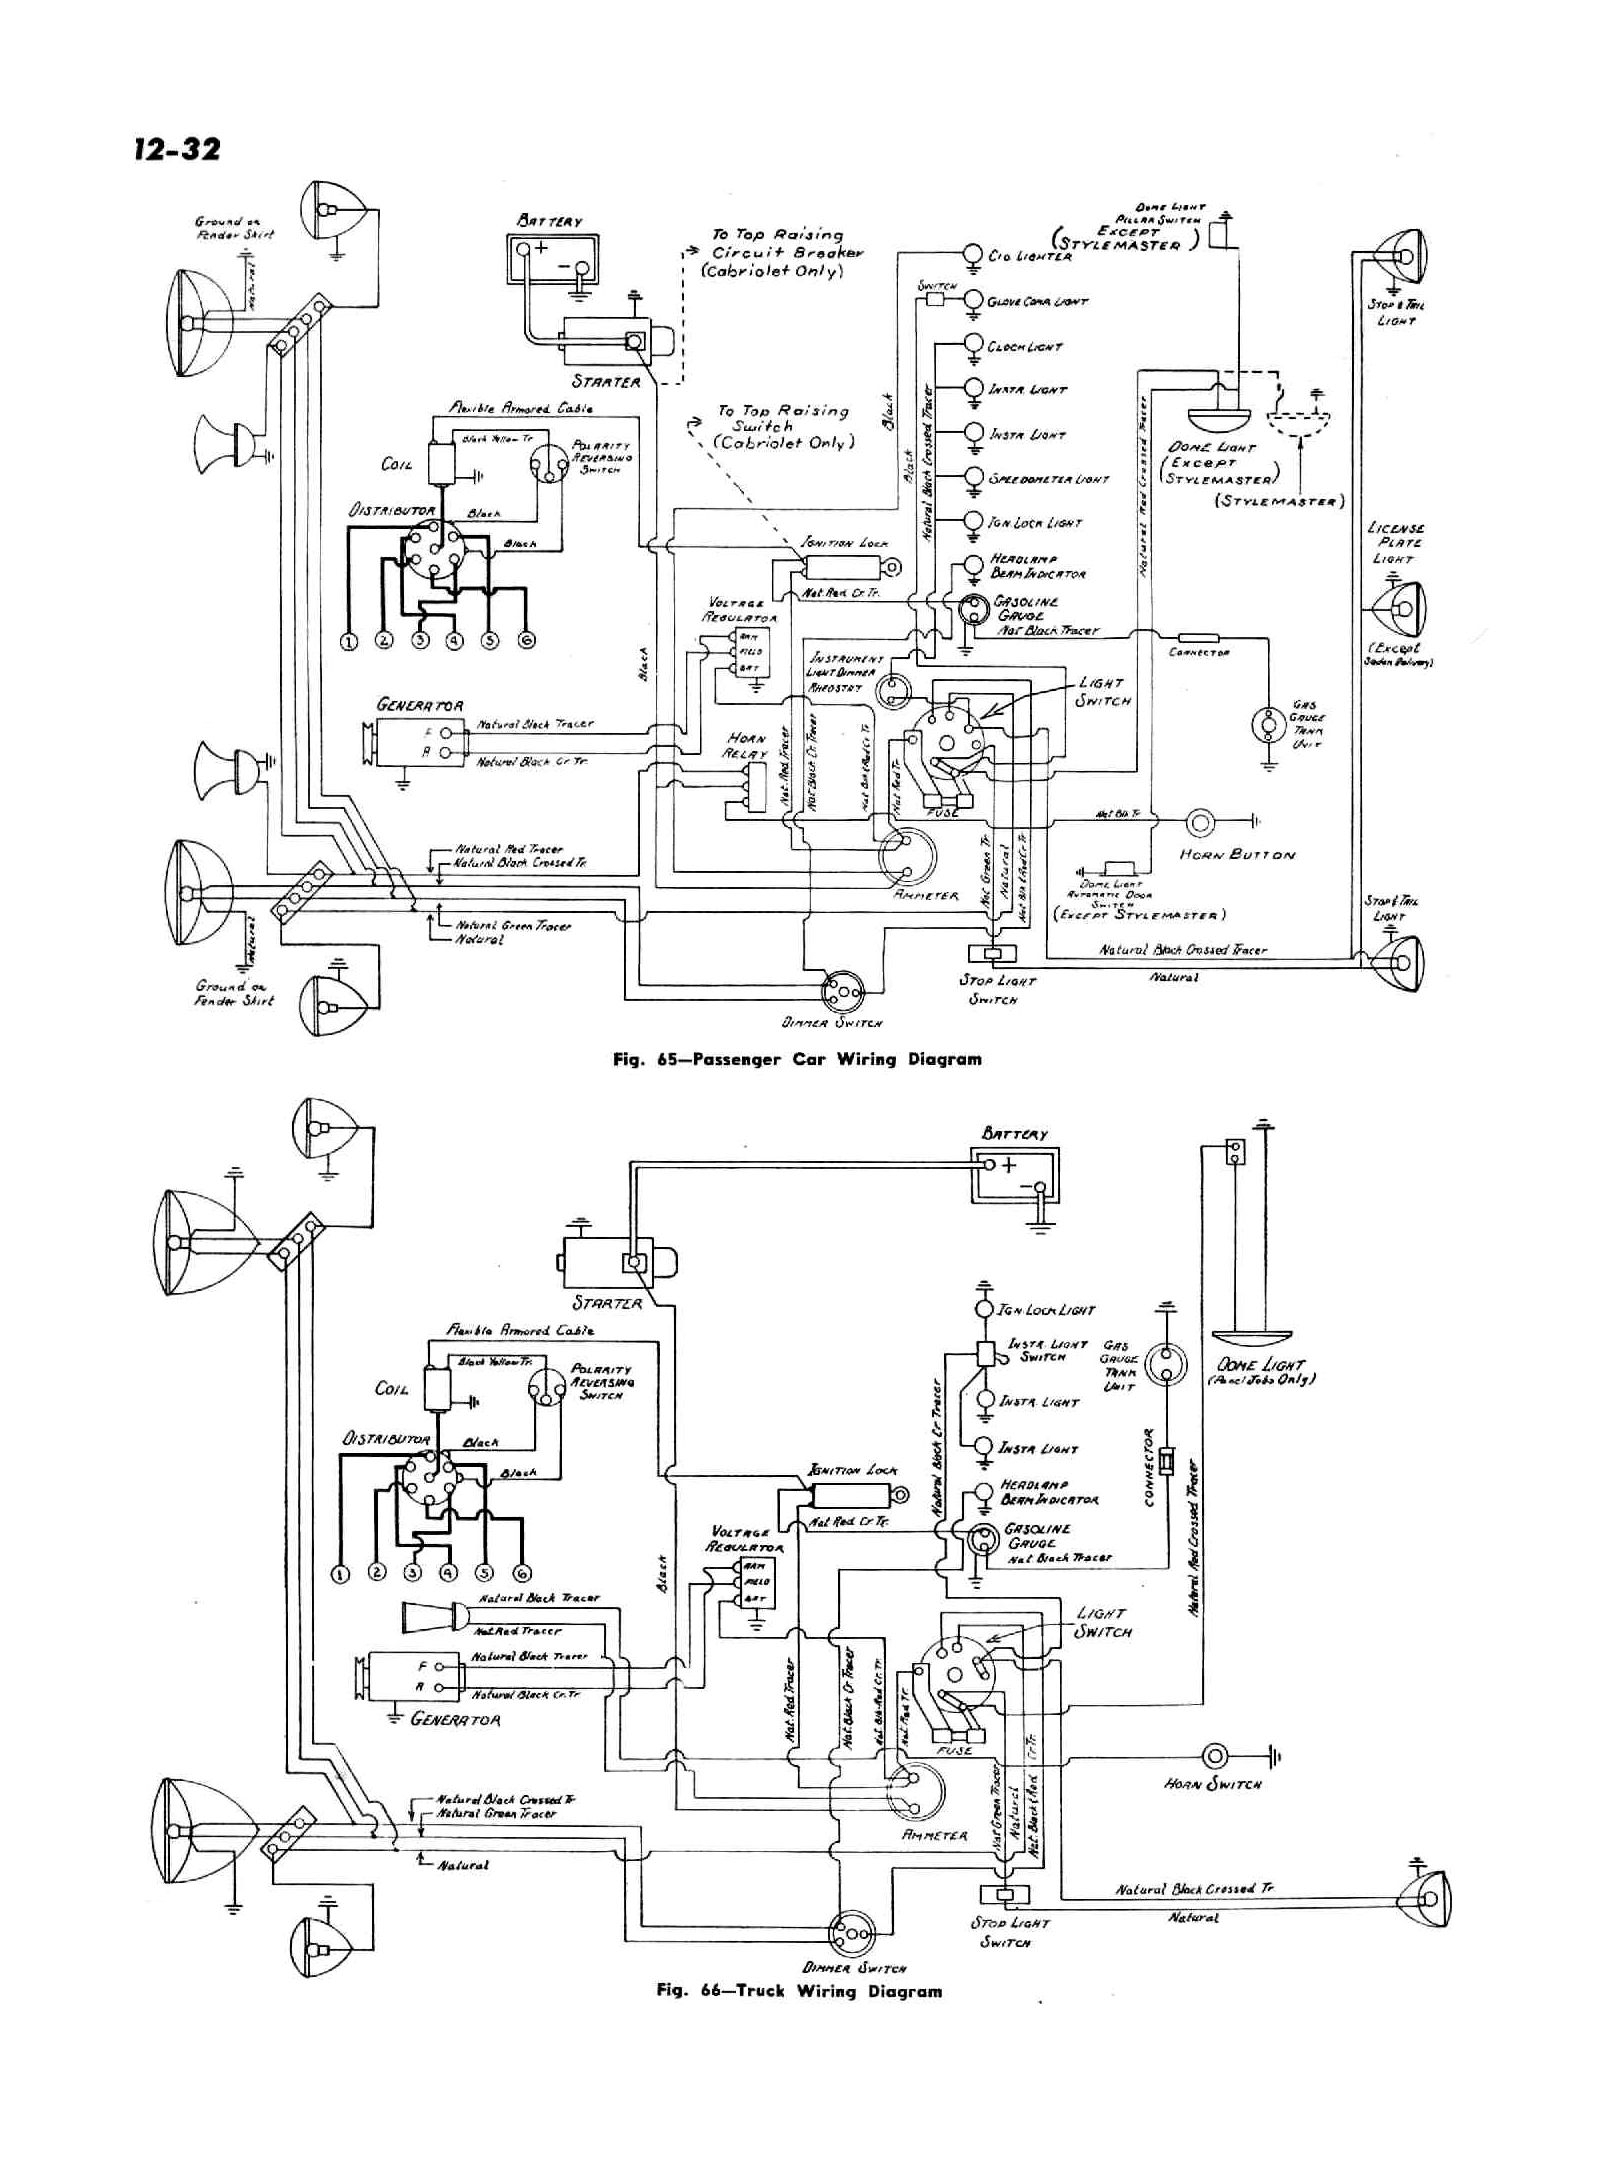 DIAGRAM] 12 Volt Generator Wiring Diagram Willys Overland FULL Version HD  Quality Willys Overland - MINTOWIRINGB.TIMBERLANDSALDI.IT | Willys 12 Volt Generator Wiring Diagram |  | Saldi Timberland